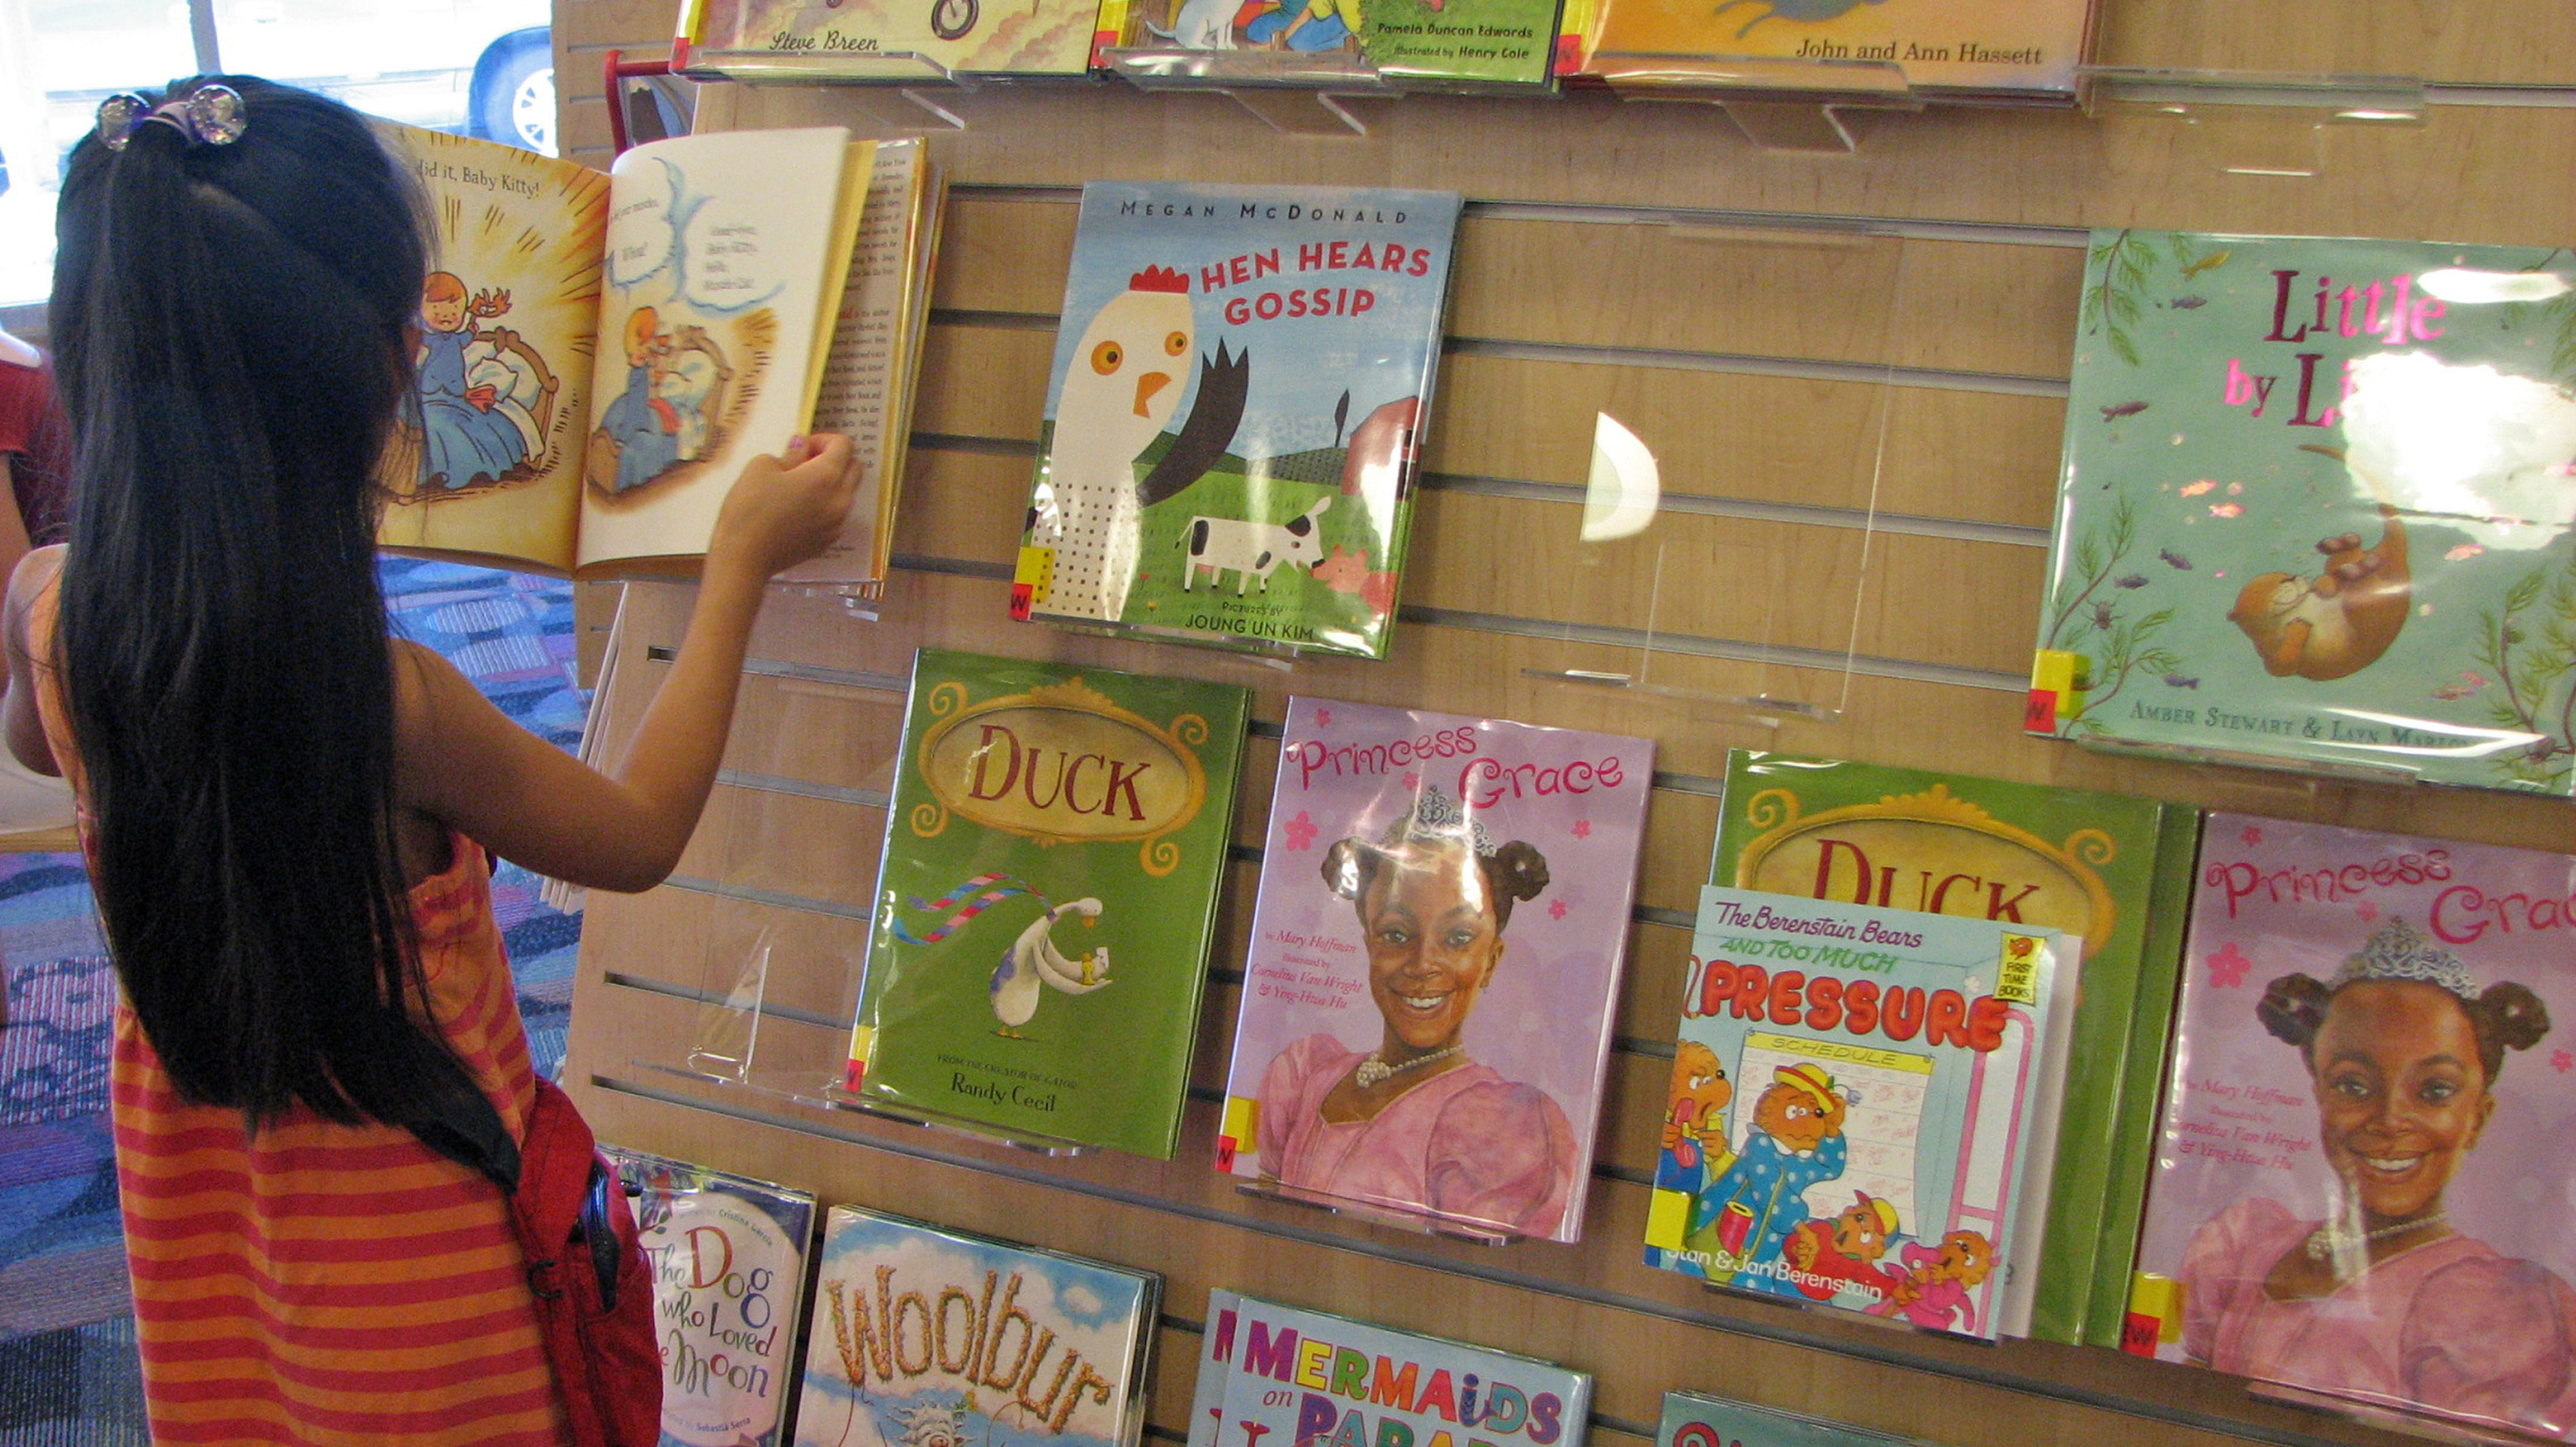 As Demographics Shift, Kids' Books Stay Stubbornly White